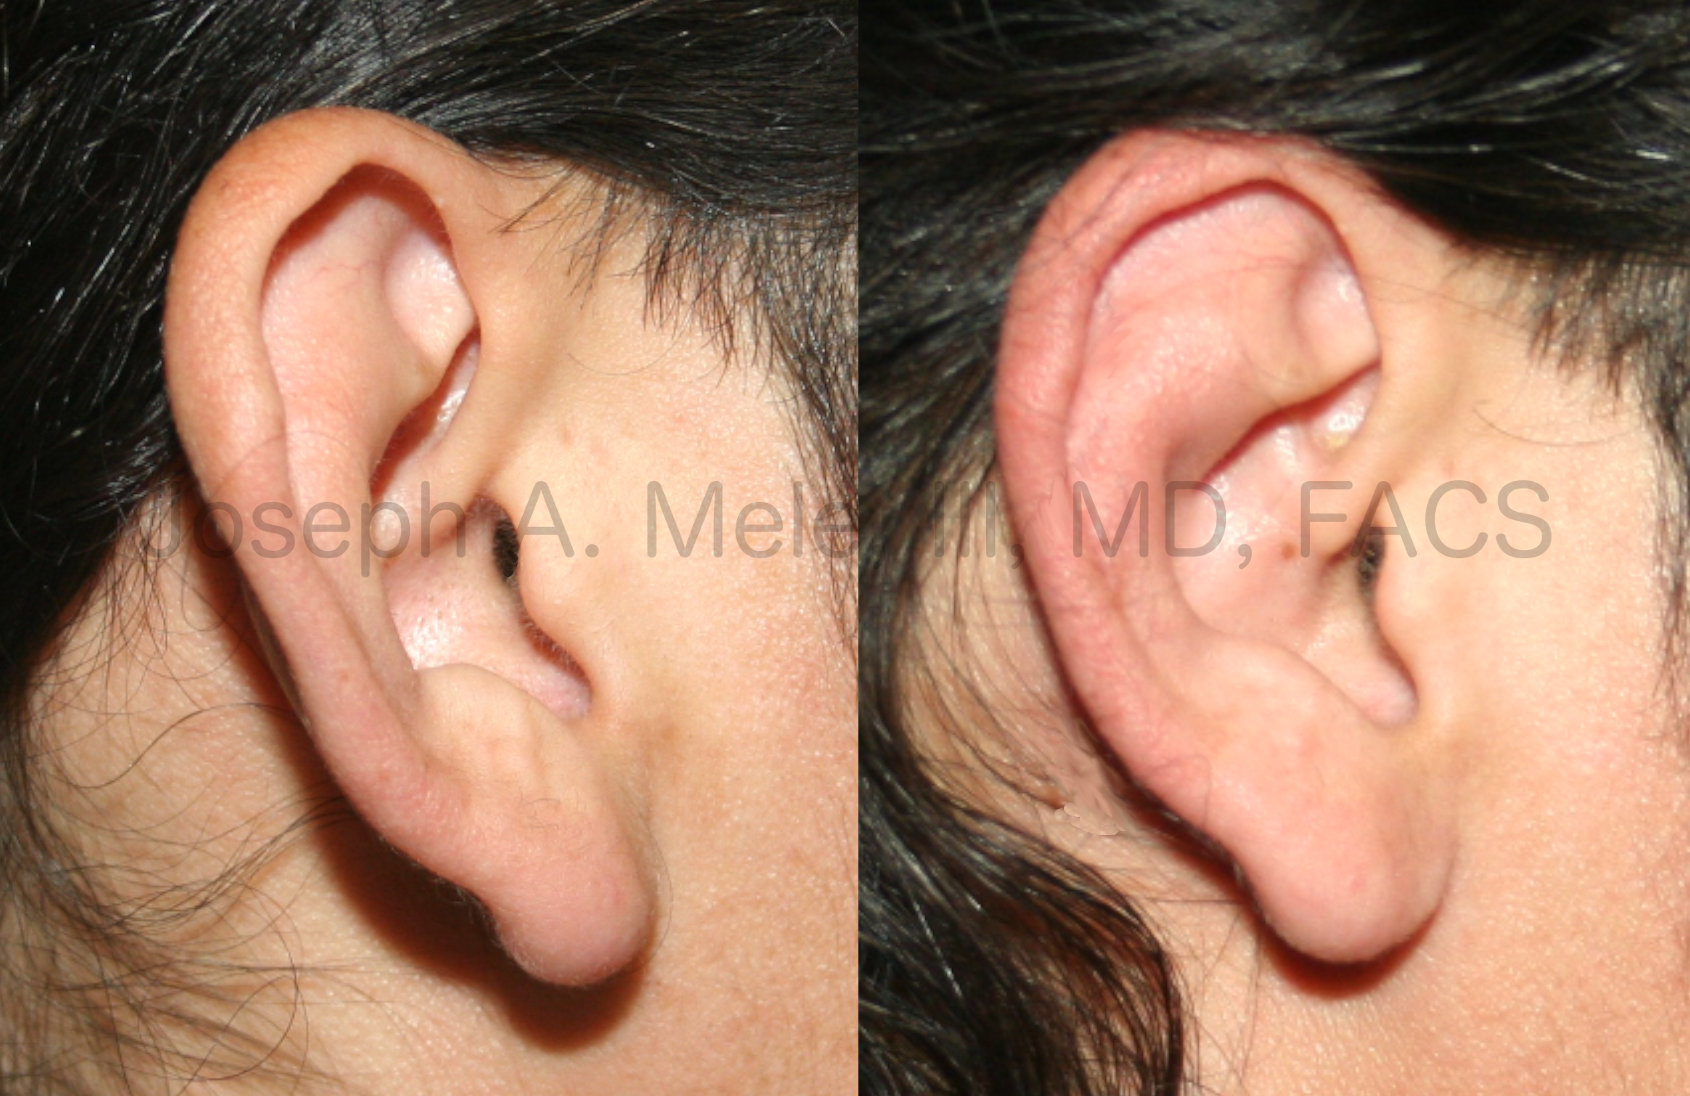 Otoplasty - correction of prominent ears by reducing and rotating the concha.